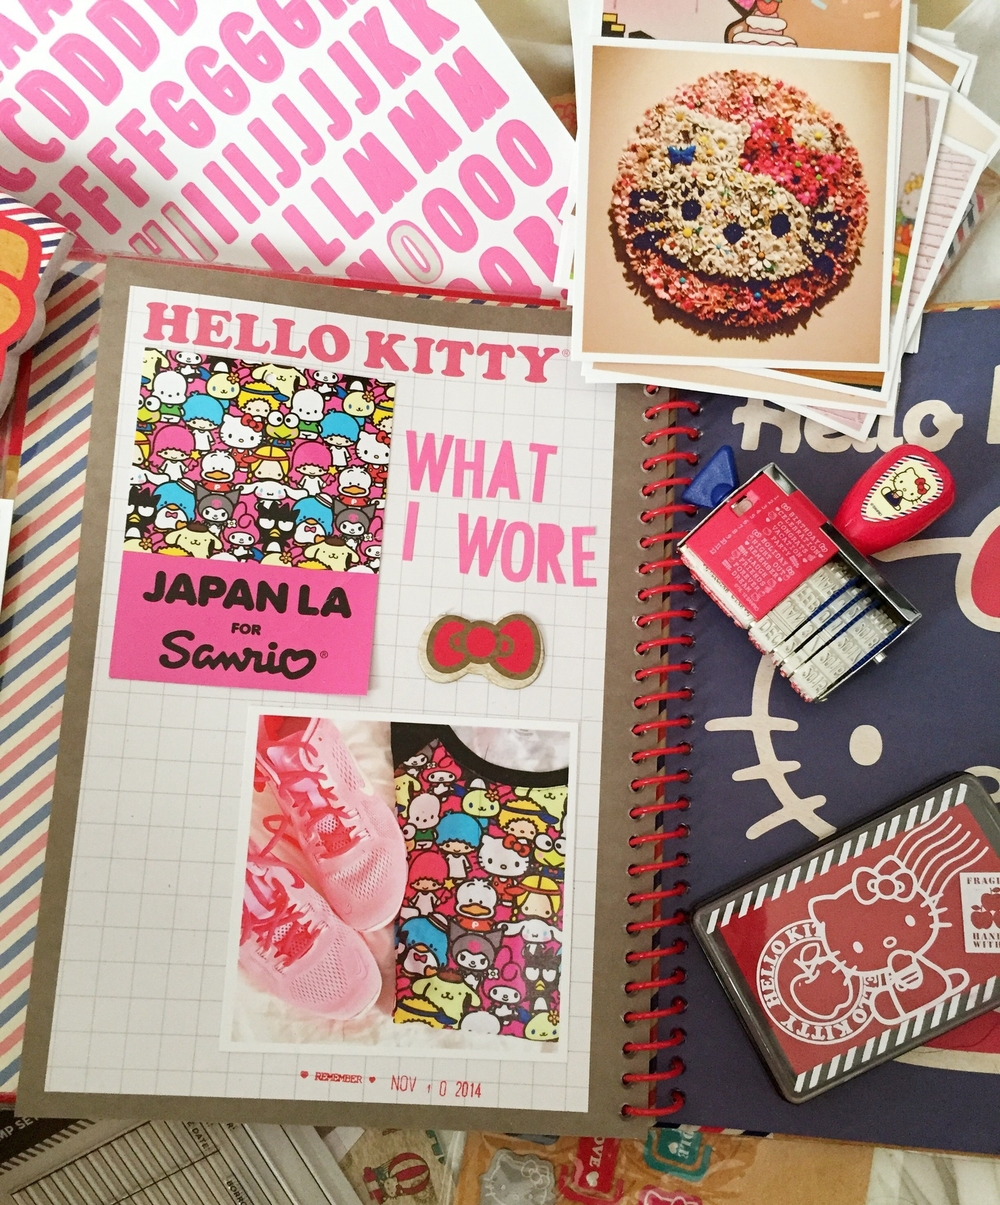 Hello Kitty Con offered scrapbooking work classes and the scrapbook packs were half off, I thought Hello Kitty Con would be a great start to my first scrapbook. Yes, it's sloppy but I had so much fun. Things like saving tags from favorite clothing will no longer make me feel like a hoarder.